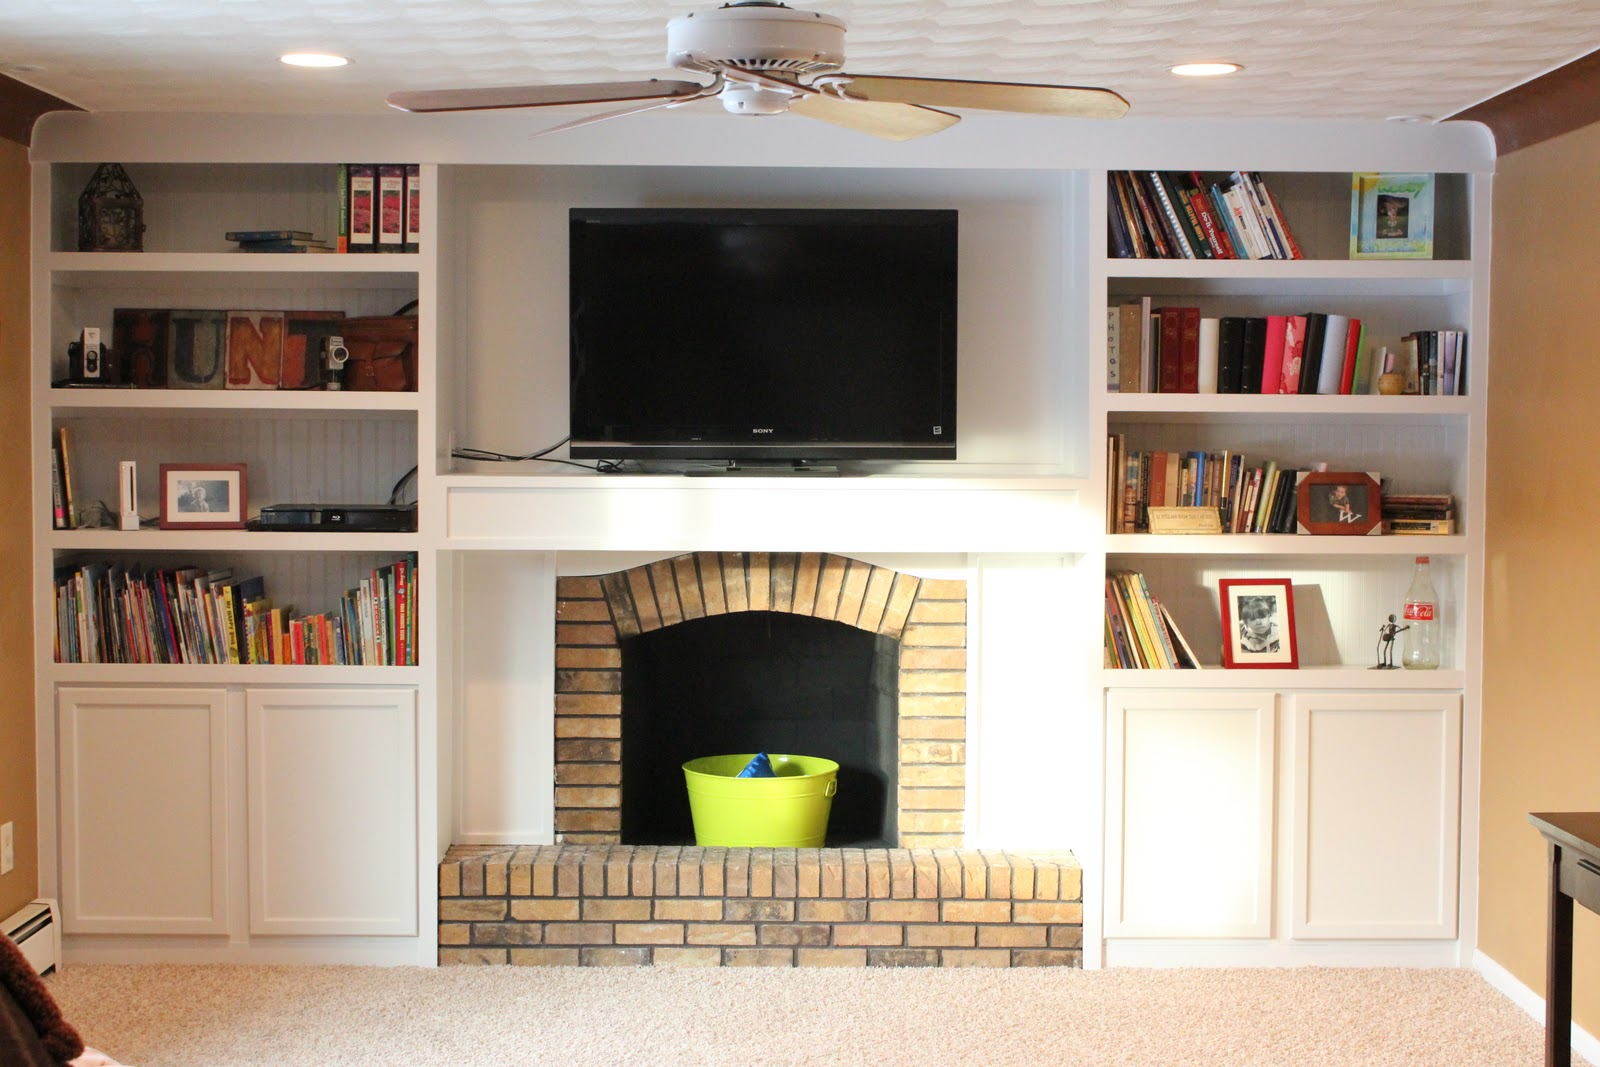 Floor To Ceiling Built In Bookcase Around Fireplace And Wall Mounted Tv, 15  Inspiring Designs